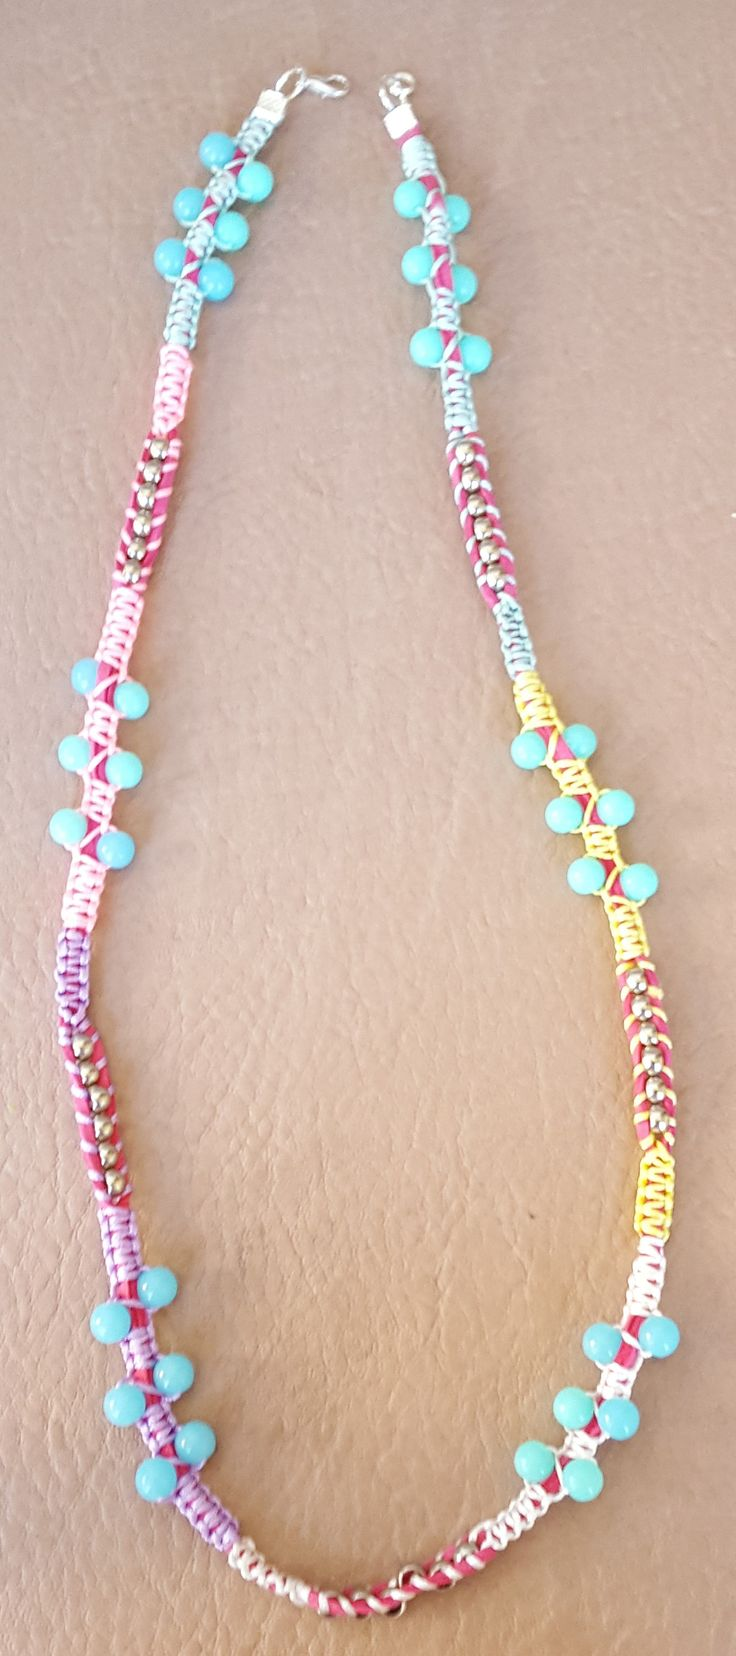 Multi Coloured Macrame Necklace in Pastel Shades with Blue/Turquoise and Silver Beads by KalaaStudio on Etsy